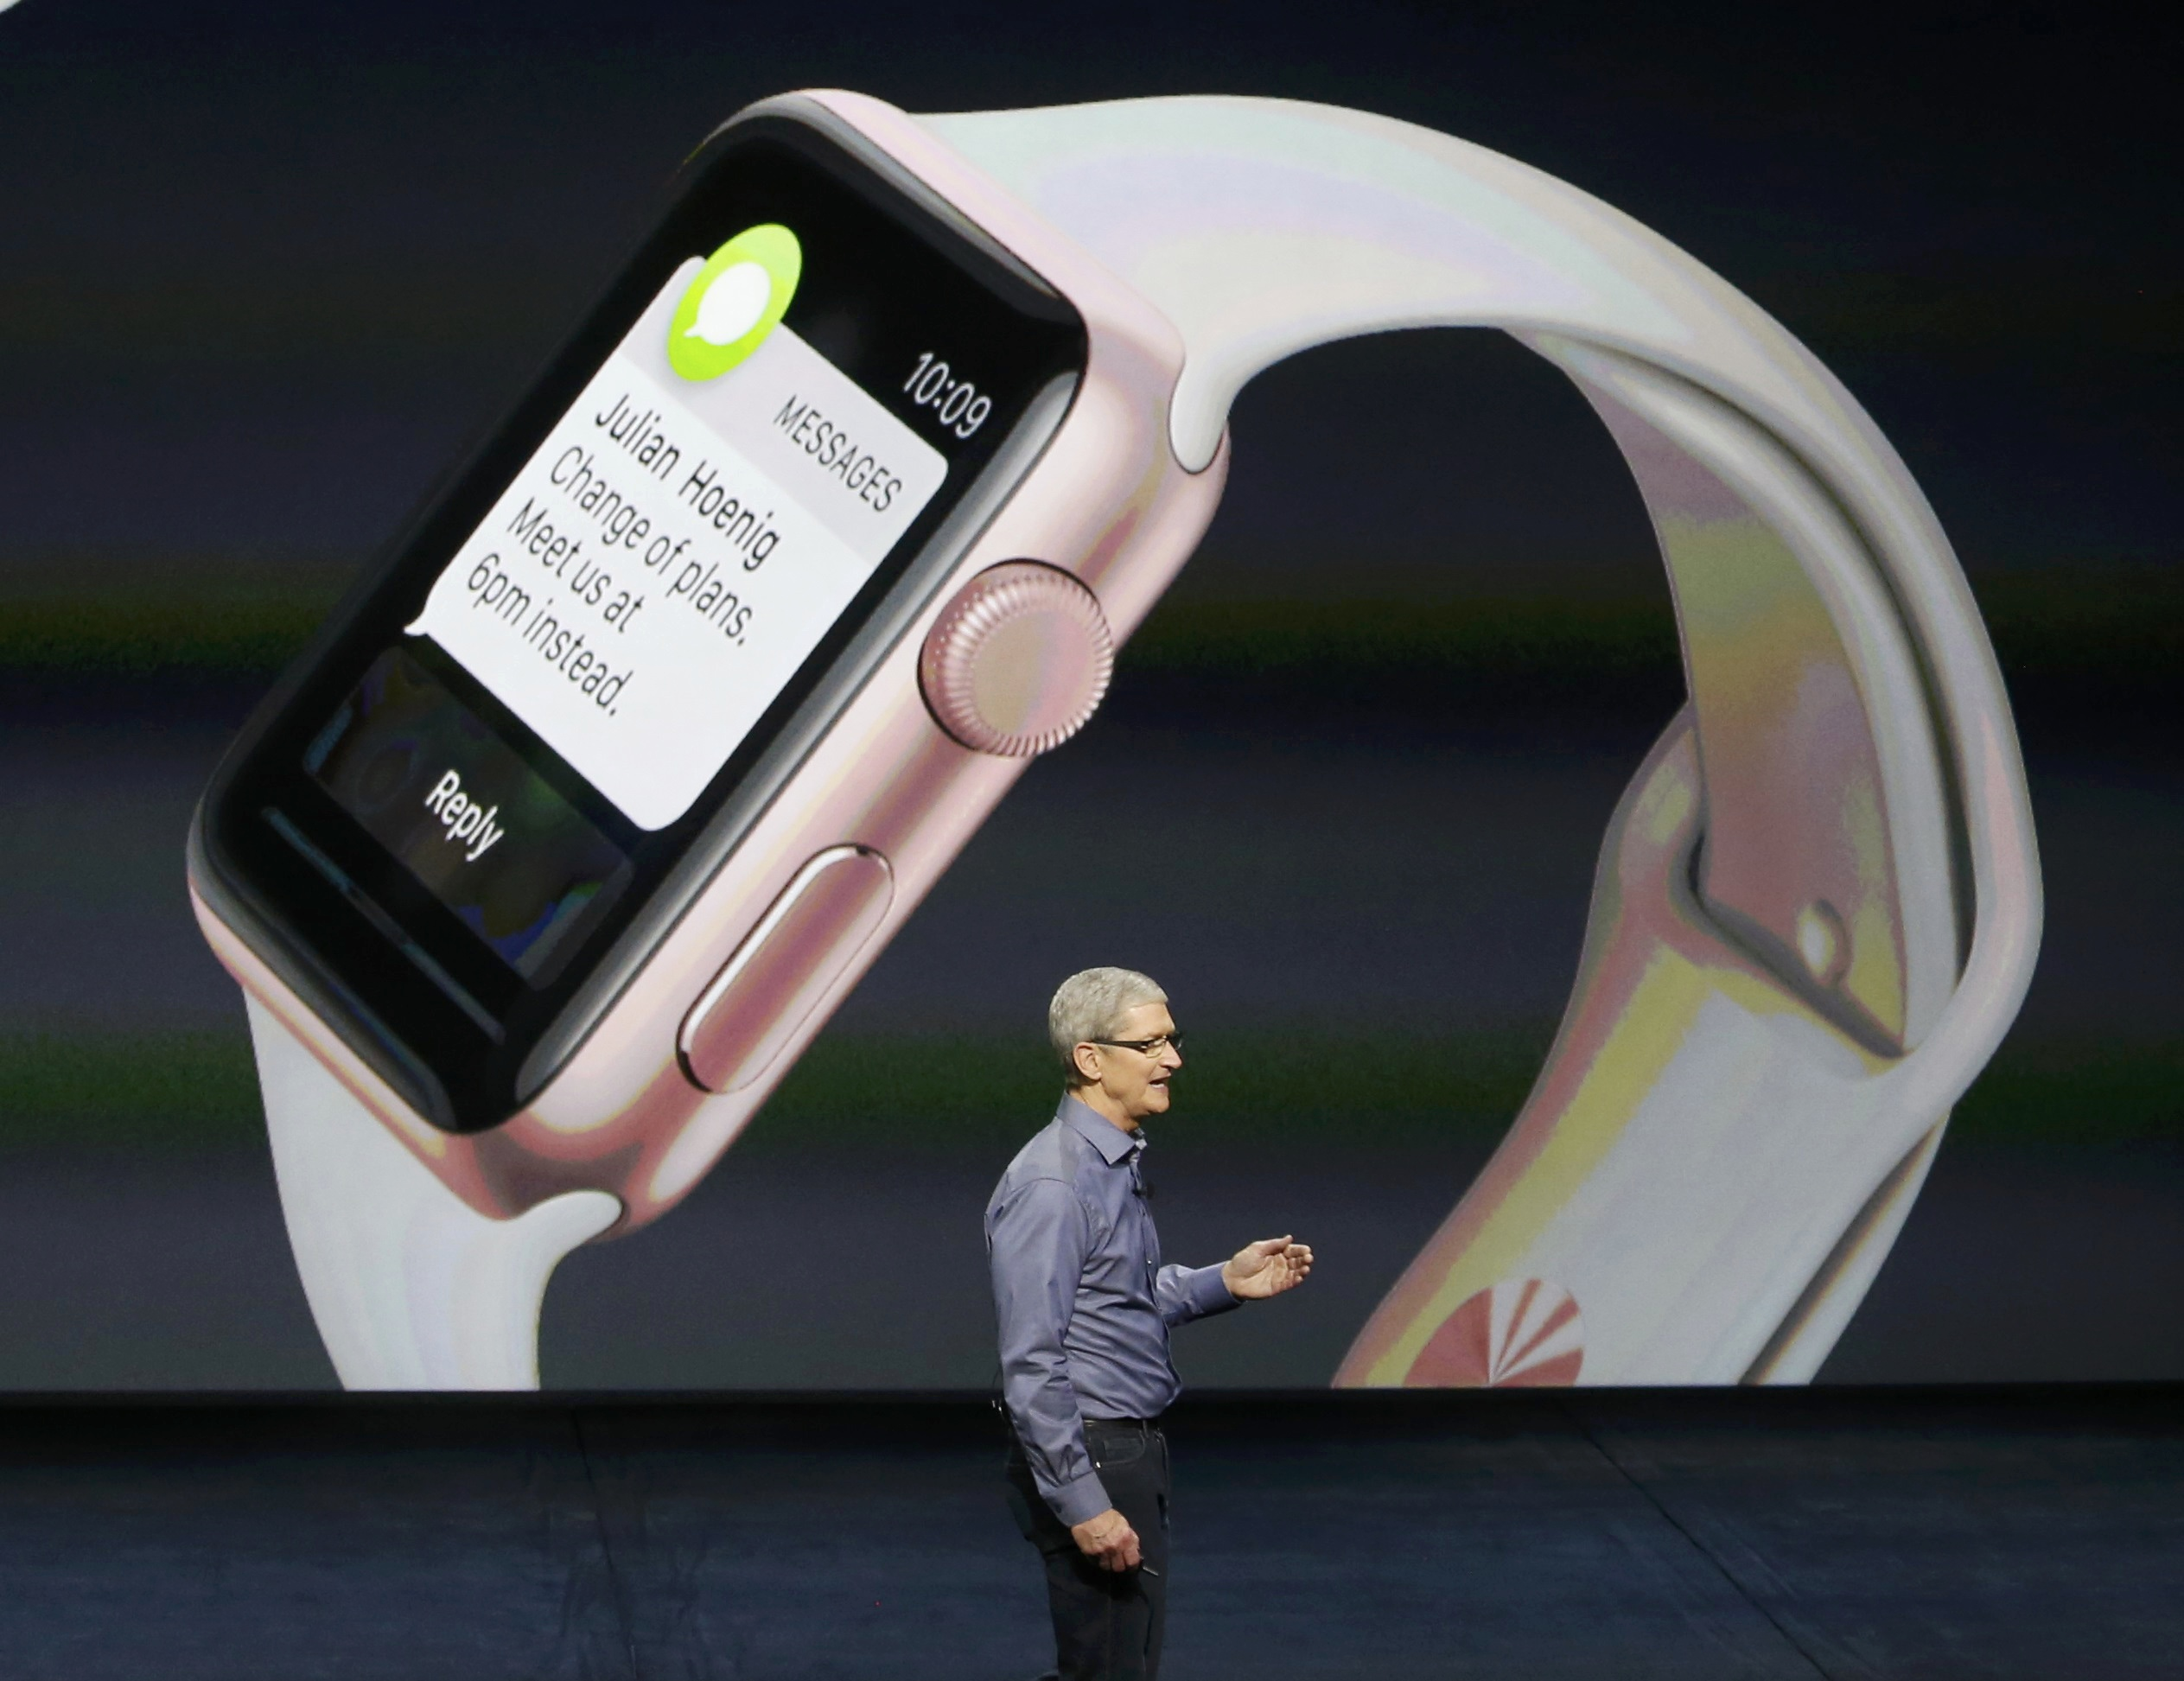 Apple CEO Tim Cook closes the presentation as an Apple Watch is shown in background during an Apple media event in San Francisco, California, September 9, 2015. Reuters/Beck Diefenbach